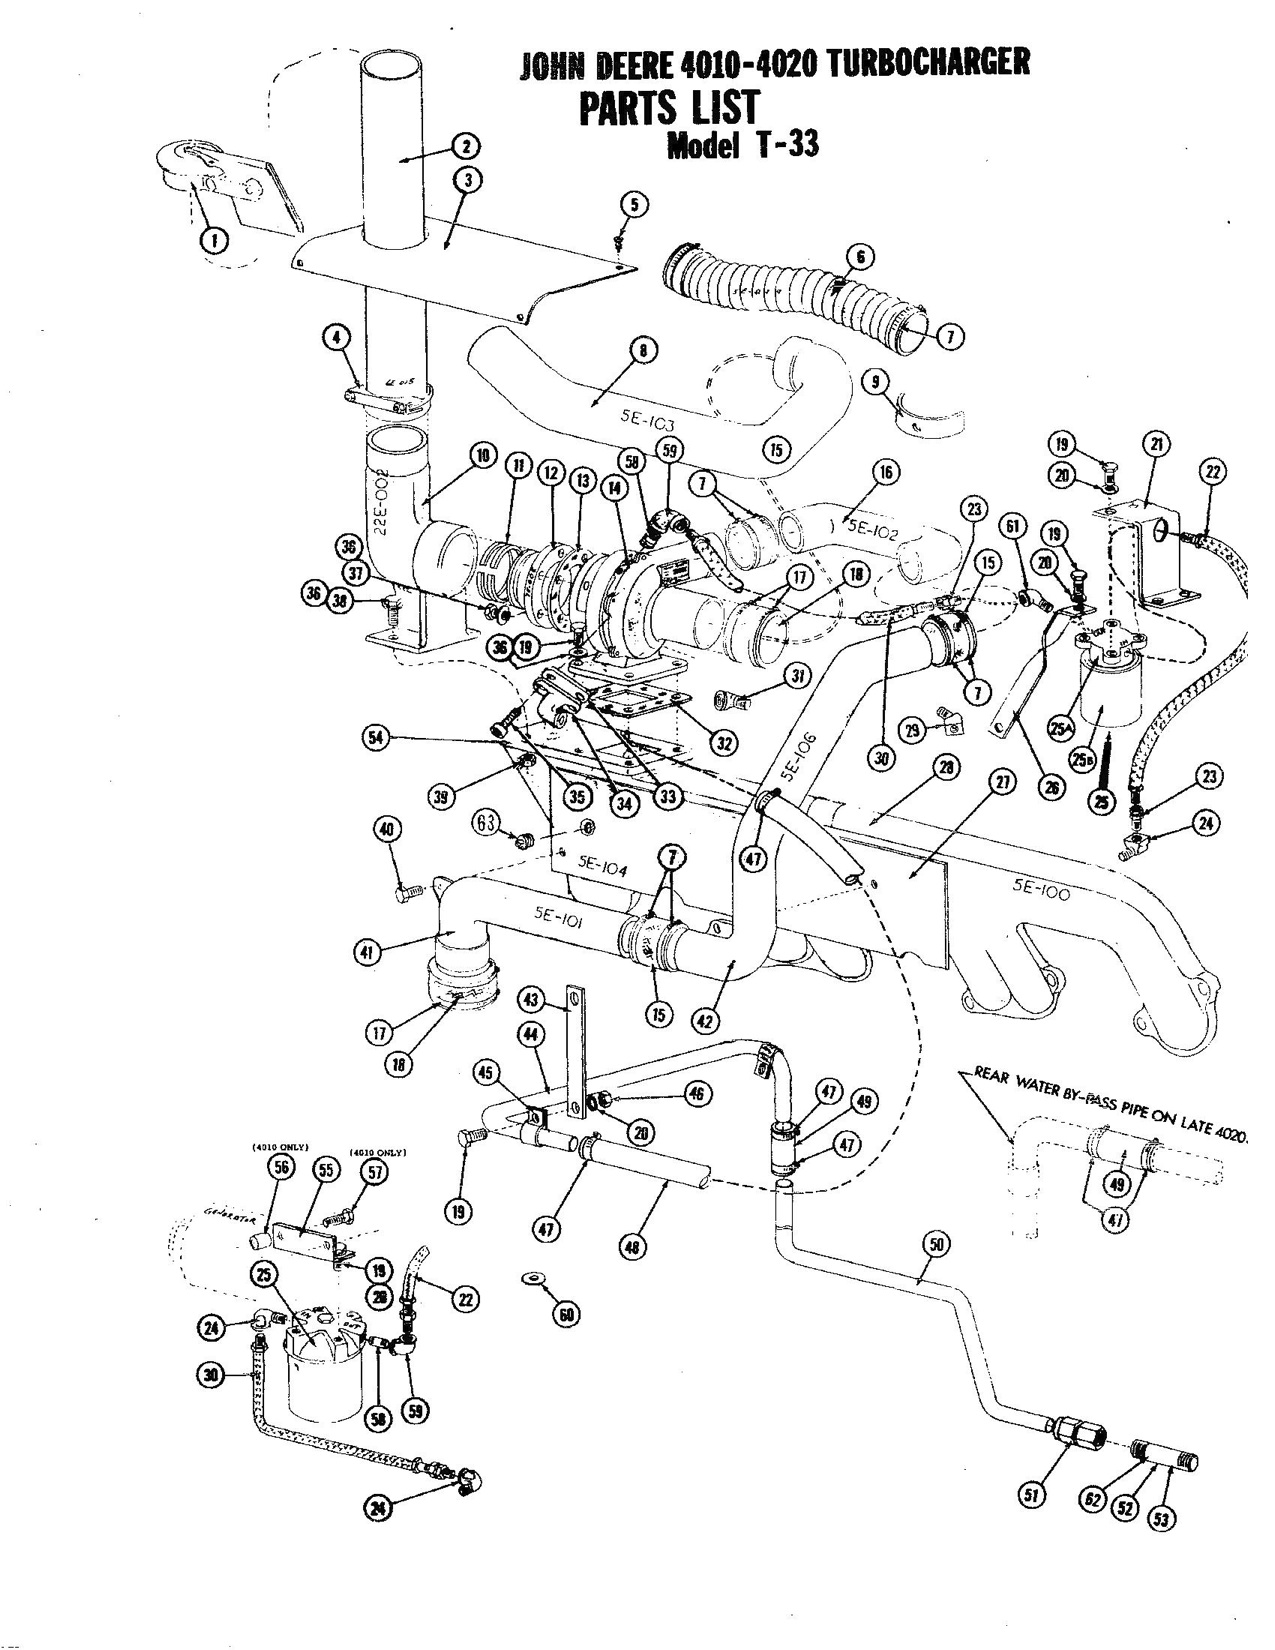 Wiring Diagram On Early Jd 4020 Auto Electrical John Deere 24 Volt Free Picture